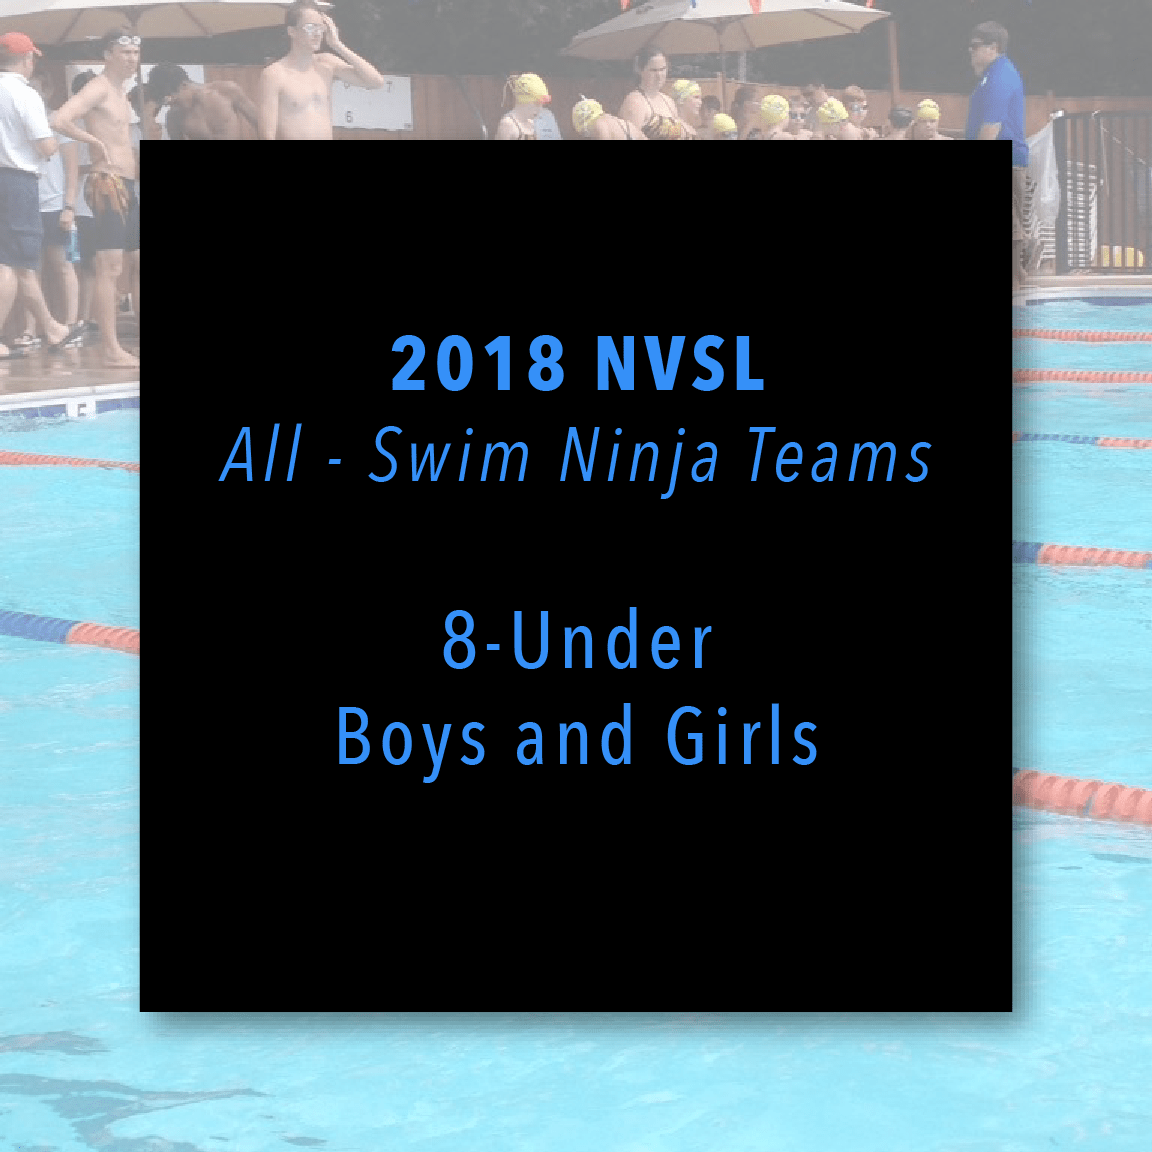 2018 NVSL All Swim Ninja: 8-Unders